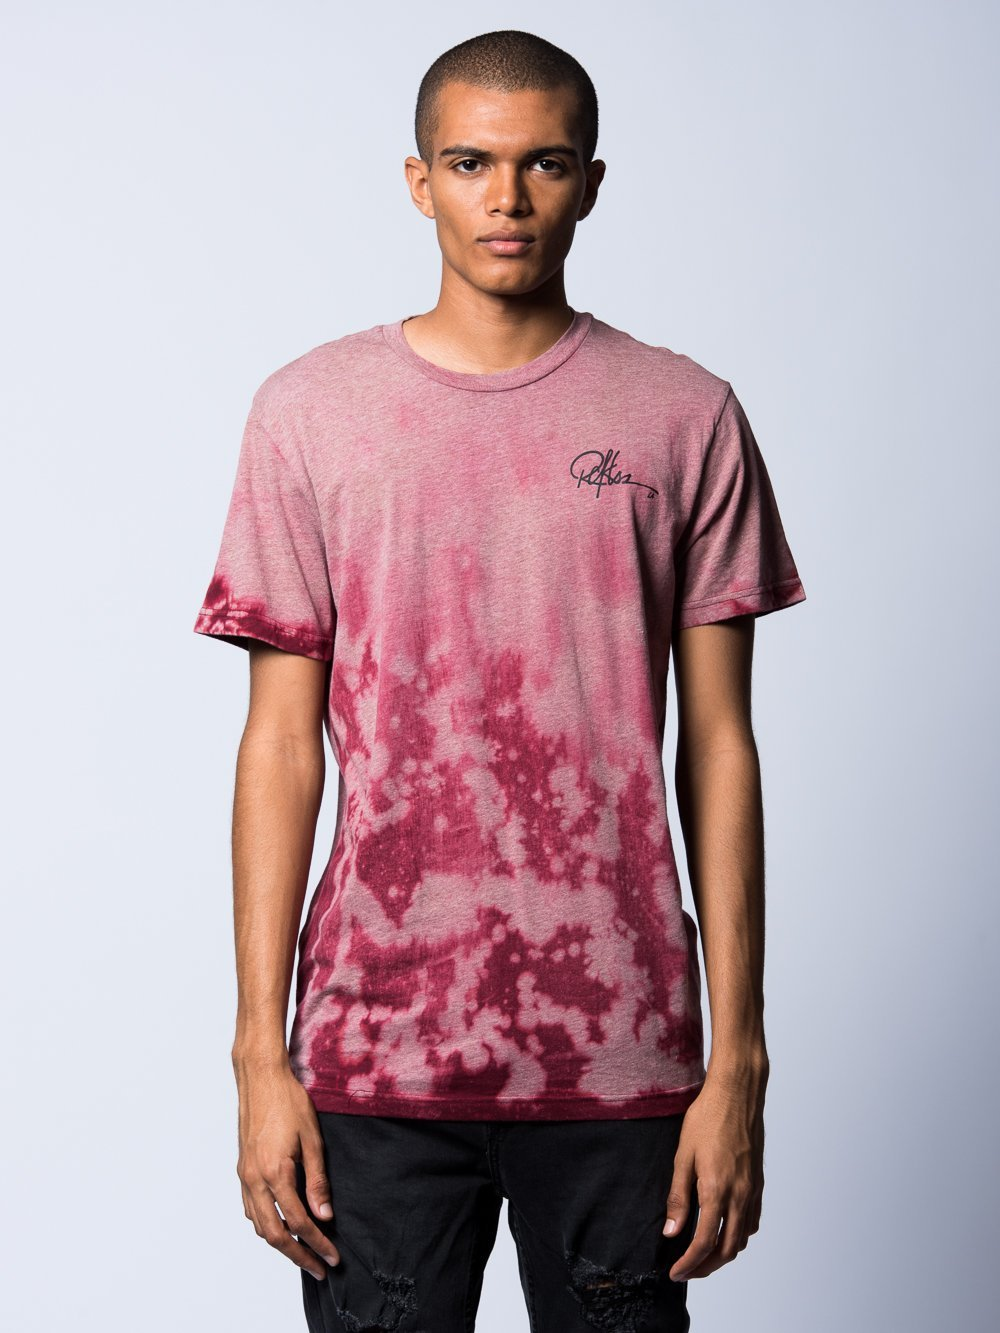 Young and Reckless Mens - Tees - Graphic Tee Fossil Tee- Burgundy Dye